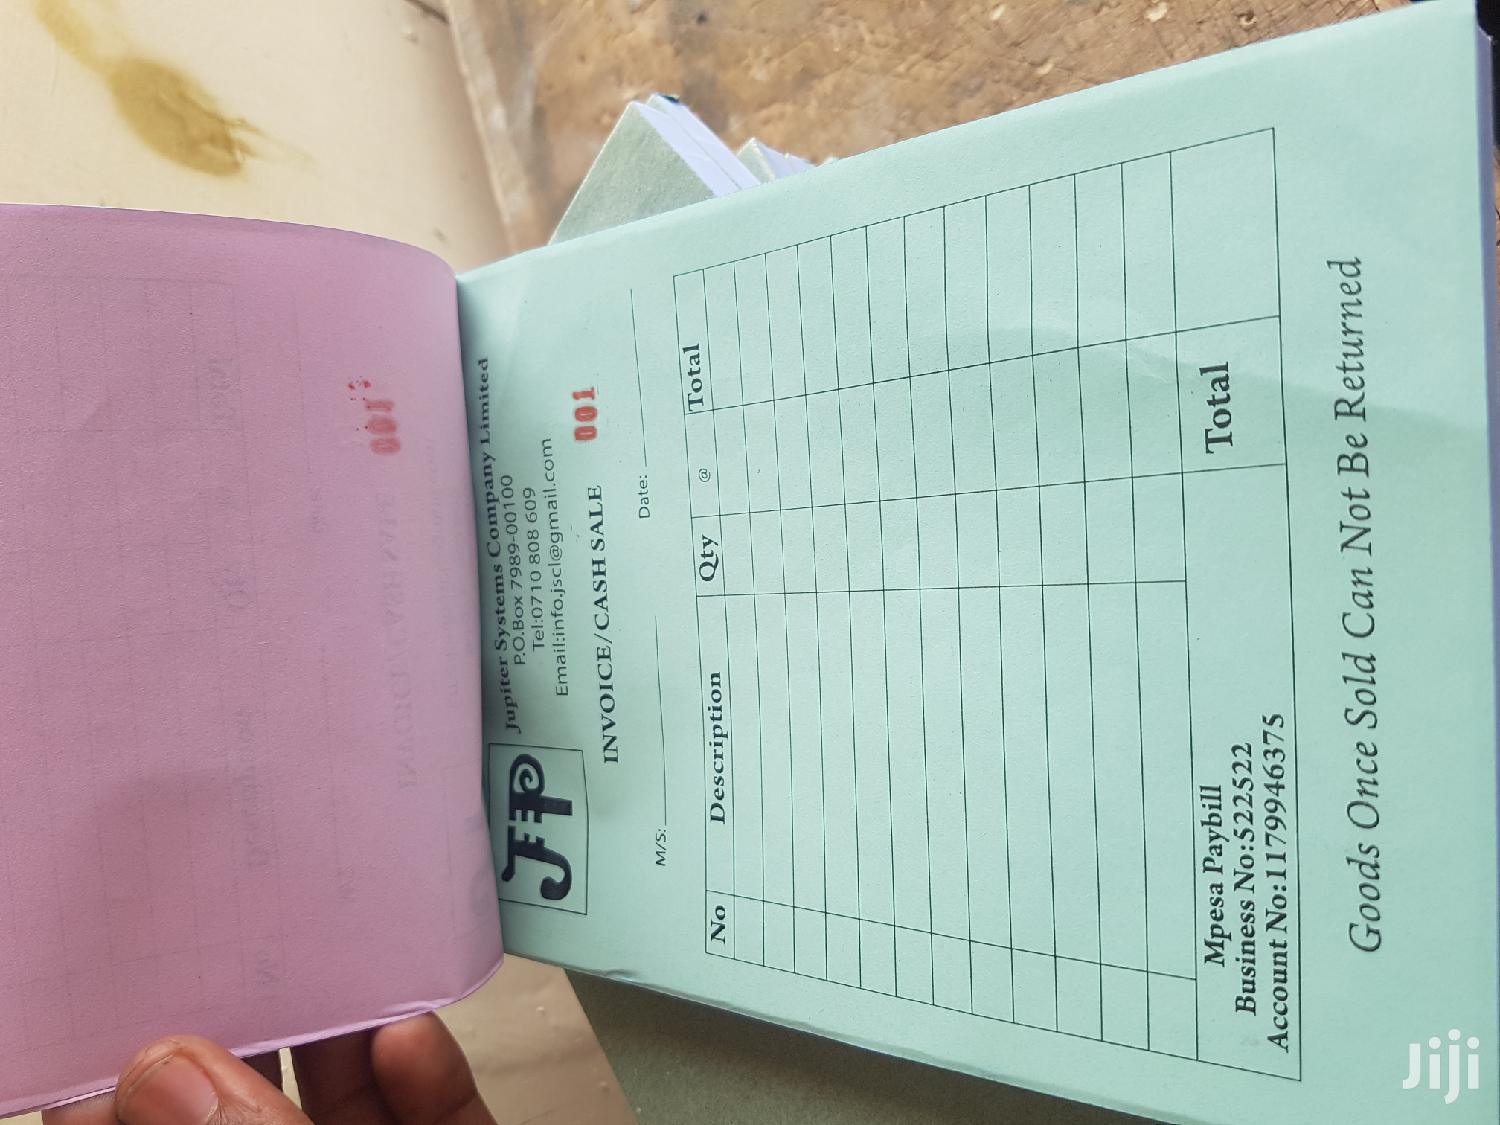 Receipt Books | Other Services for sale in Nairobi Central, Nairobi, Kenya